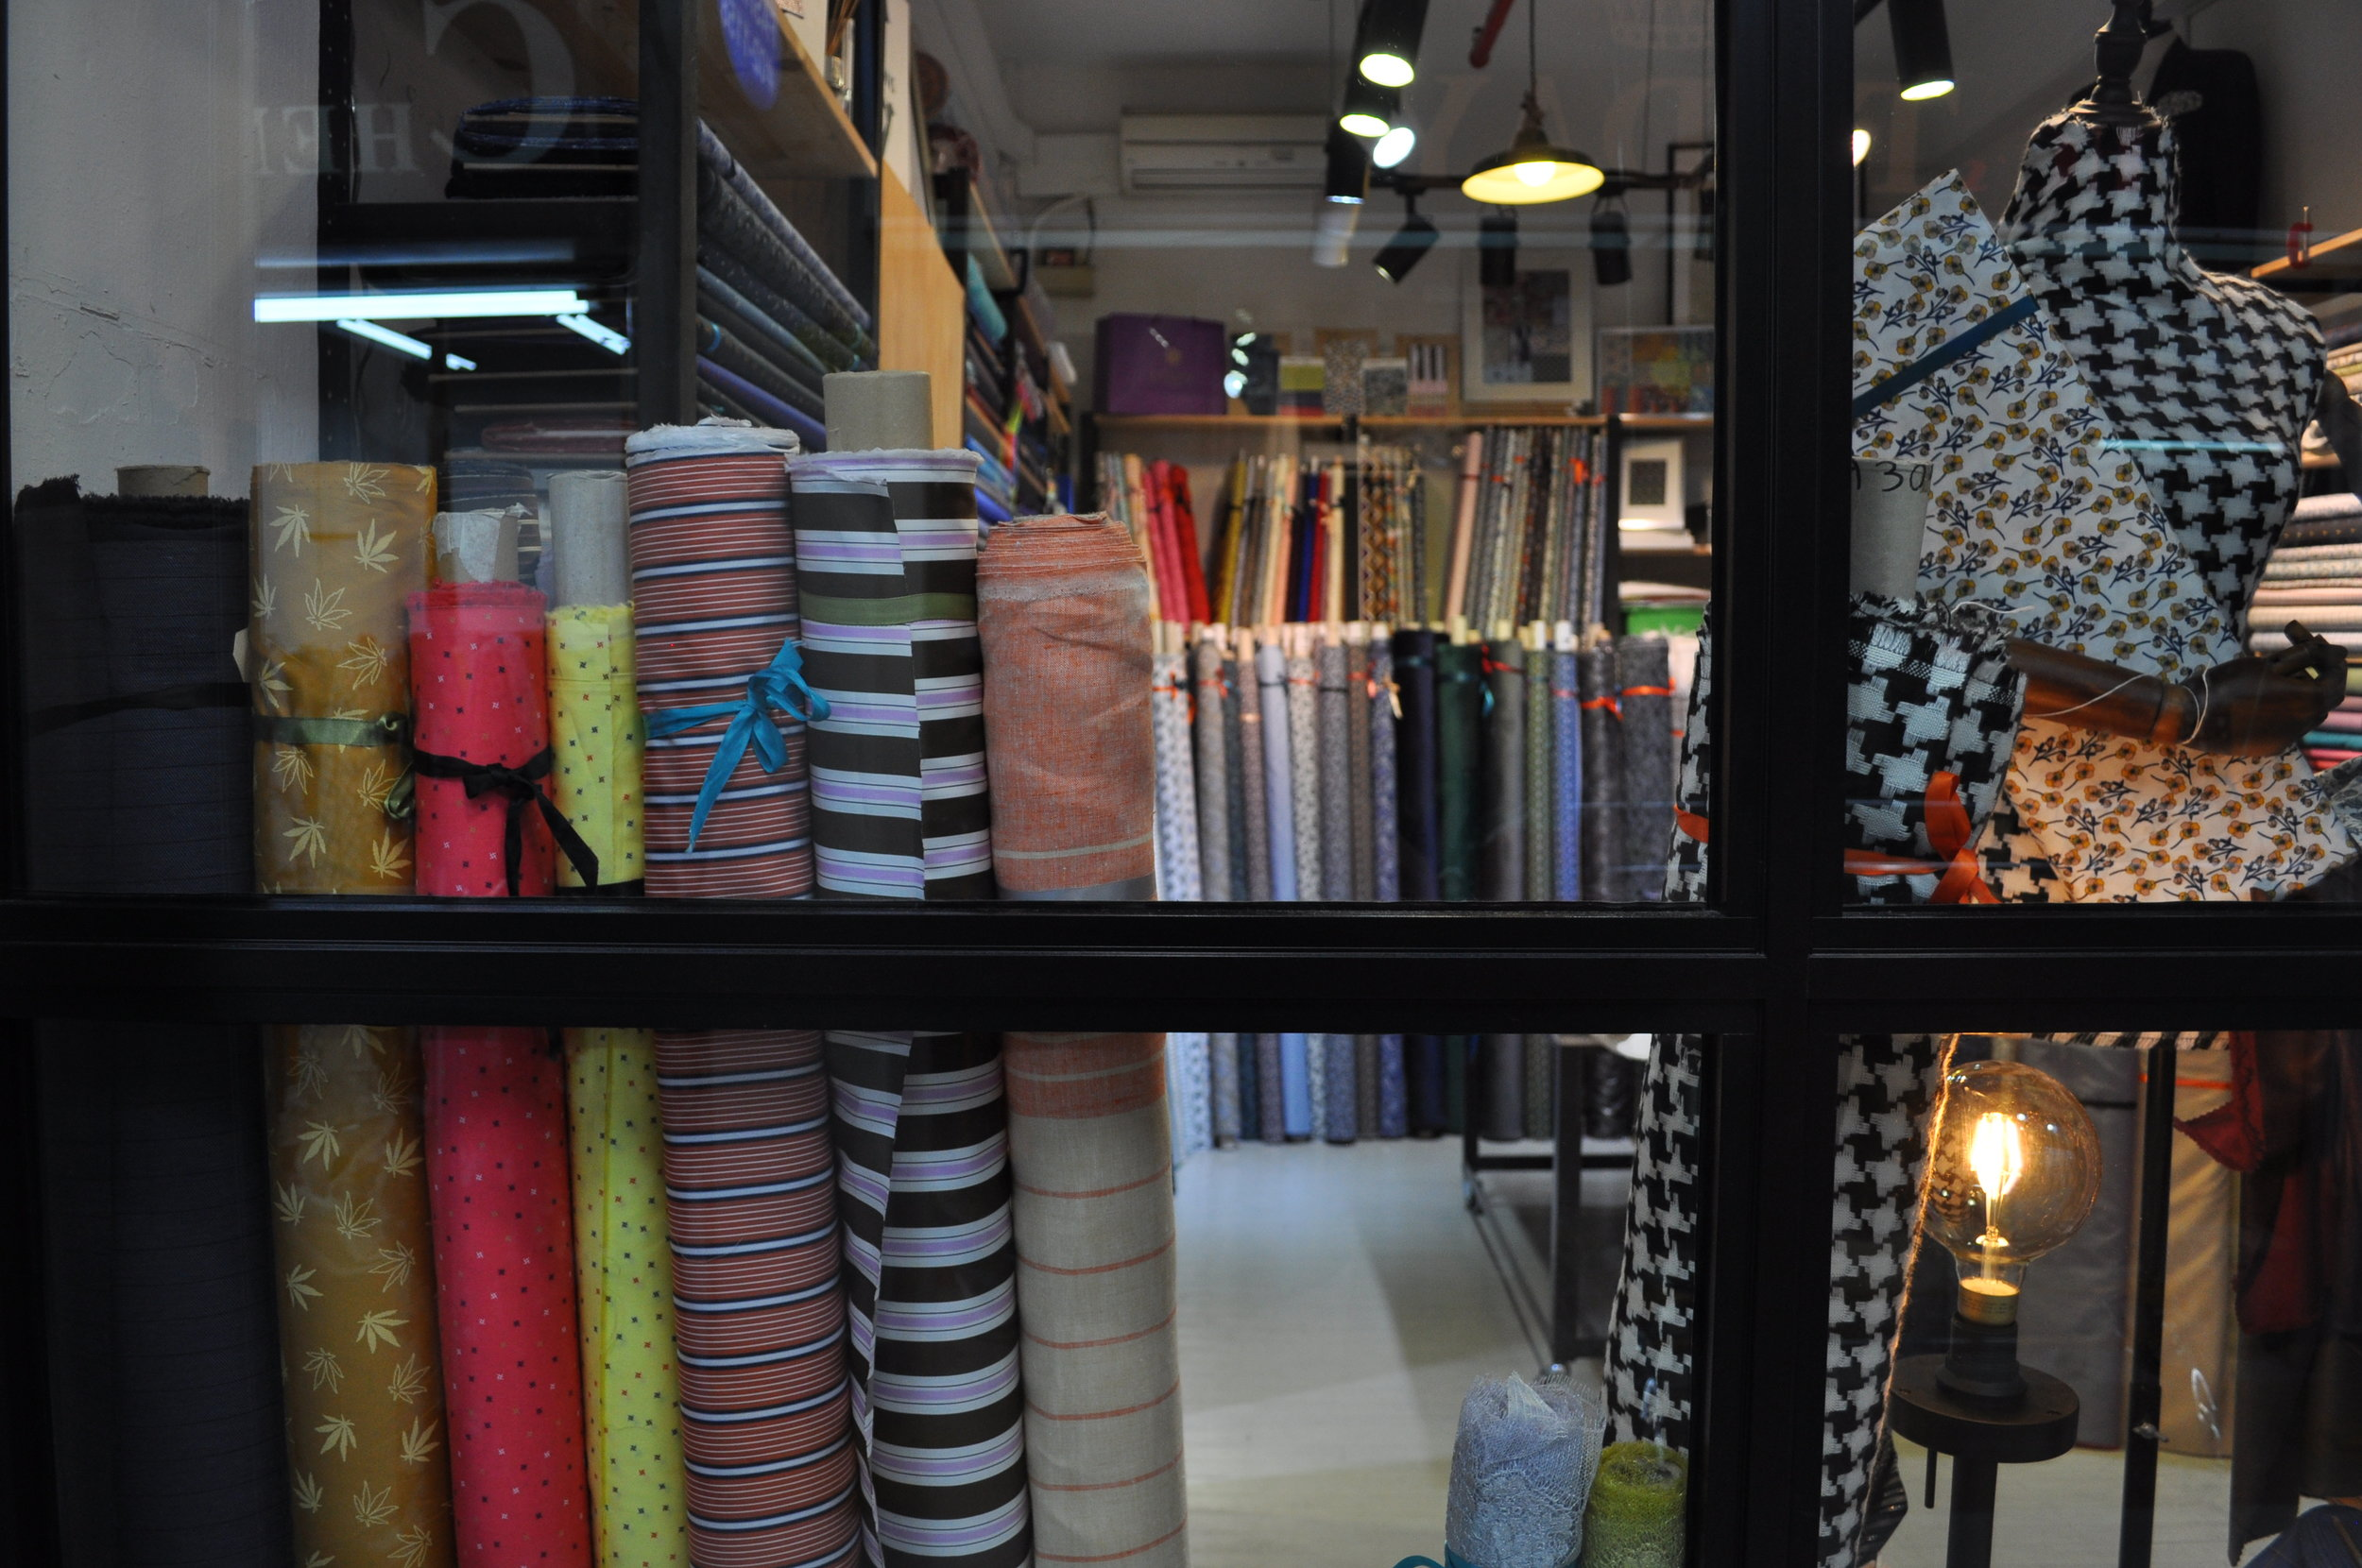 Come visit us! - We welcome you to drop by our shop and visit us. Take your time to browse, feel and touch the texture of our collection and talk to us! We will be most happy to share with you ideas and help you choose the fabric to meet your needs.